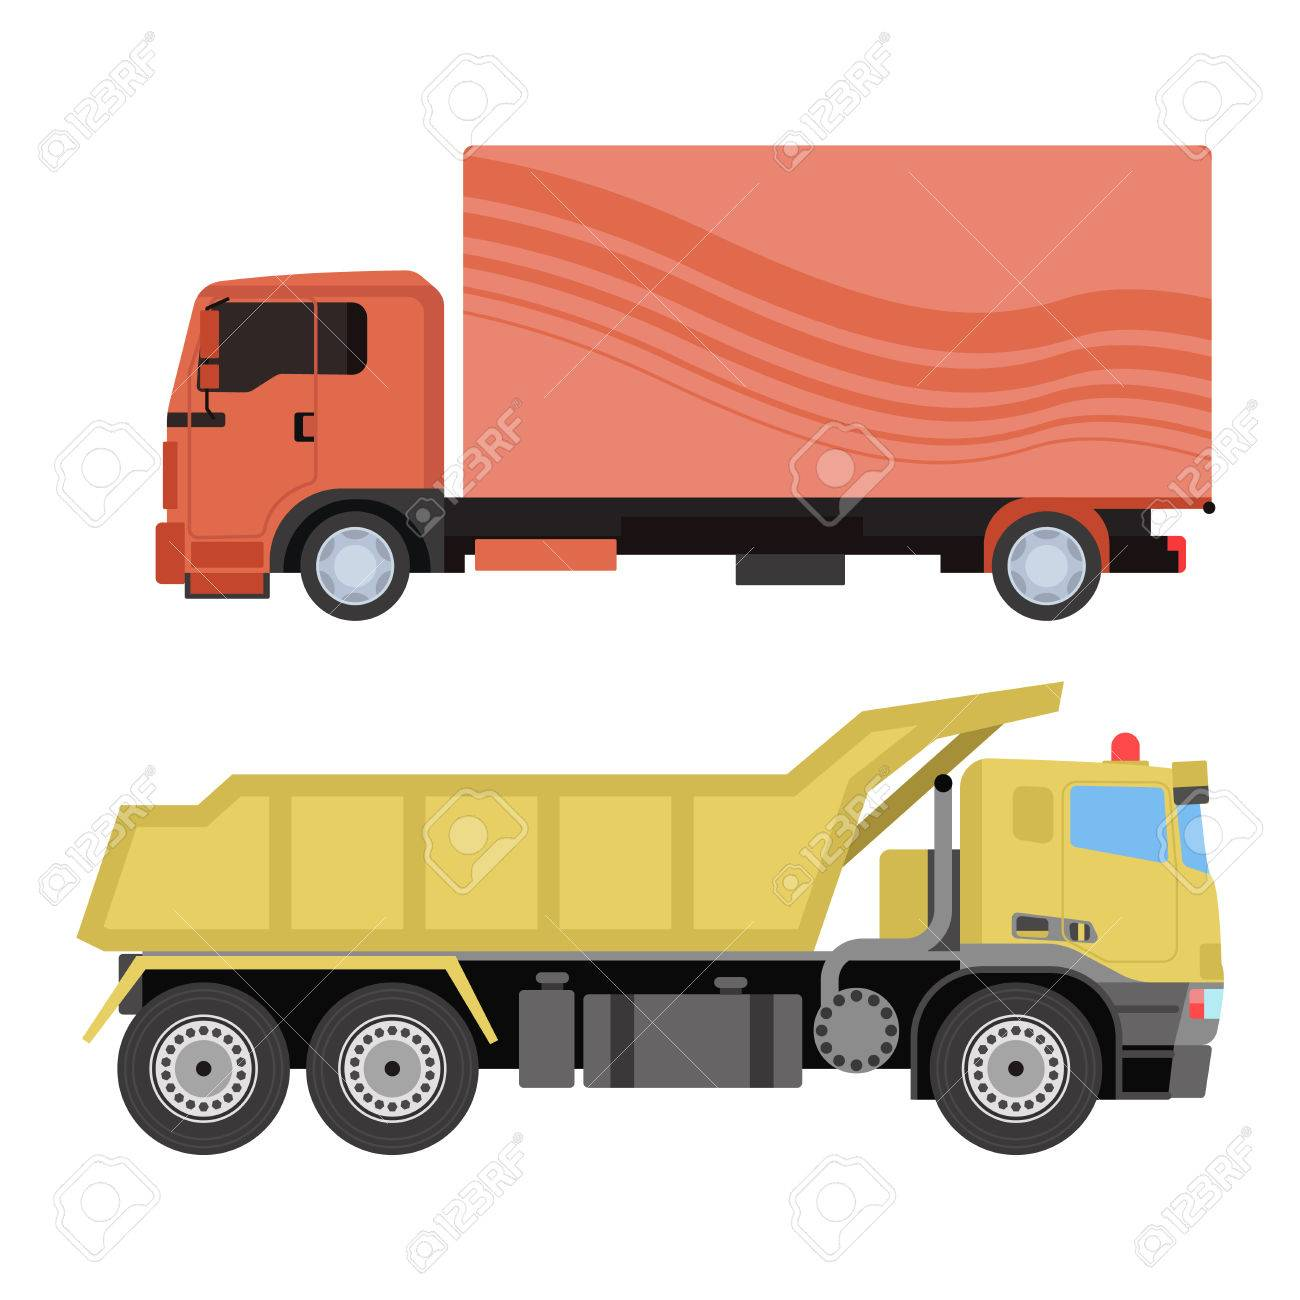 Trucks icons shipping cars vehicles cargo transportation by road